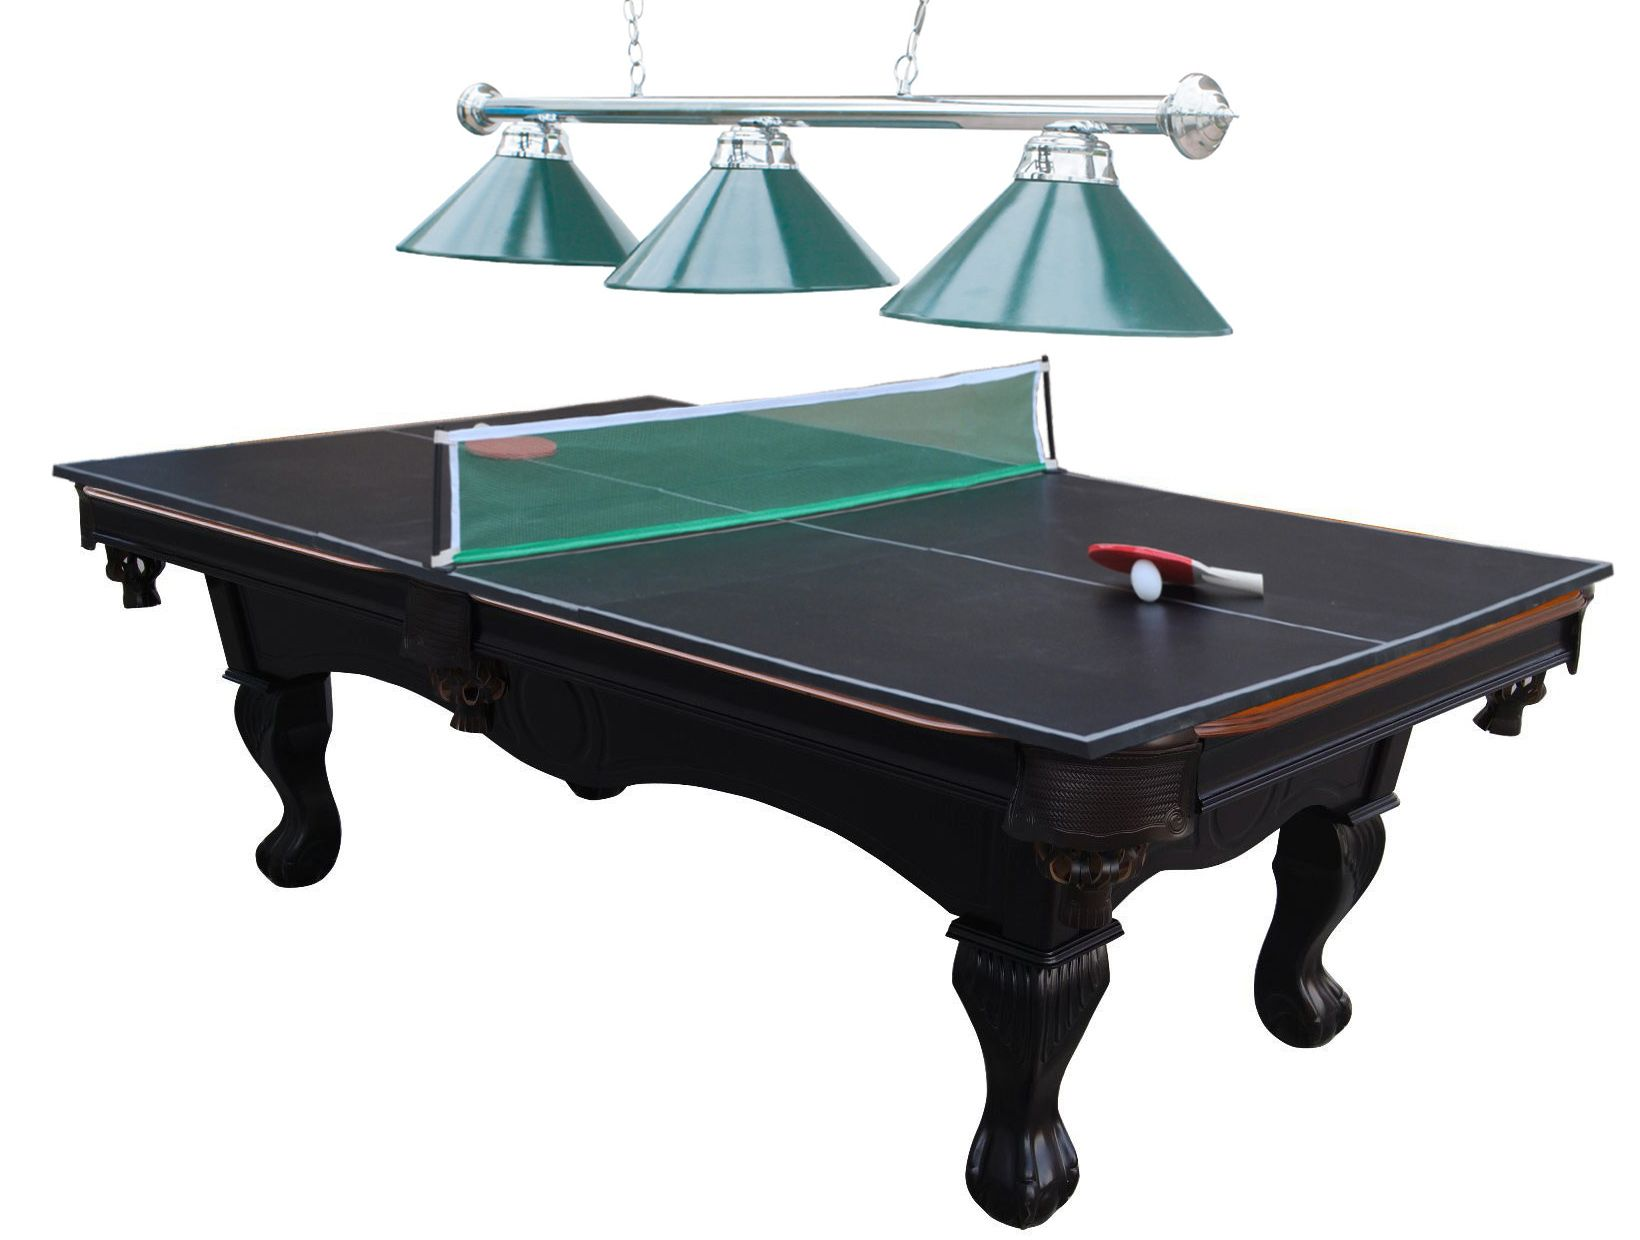 8ft Braeburn Billiard Table w/ Table Tennis and Lamp (Box one of two- MUST PURCHASE BOTH ITEMS TO GET A COMPLETE TABLE)